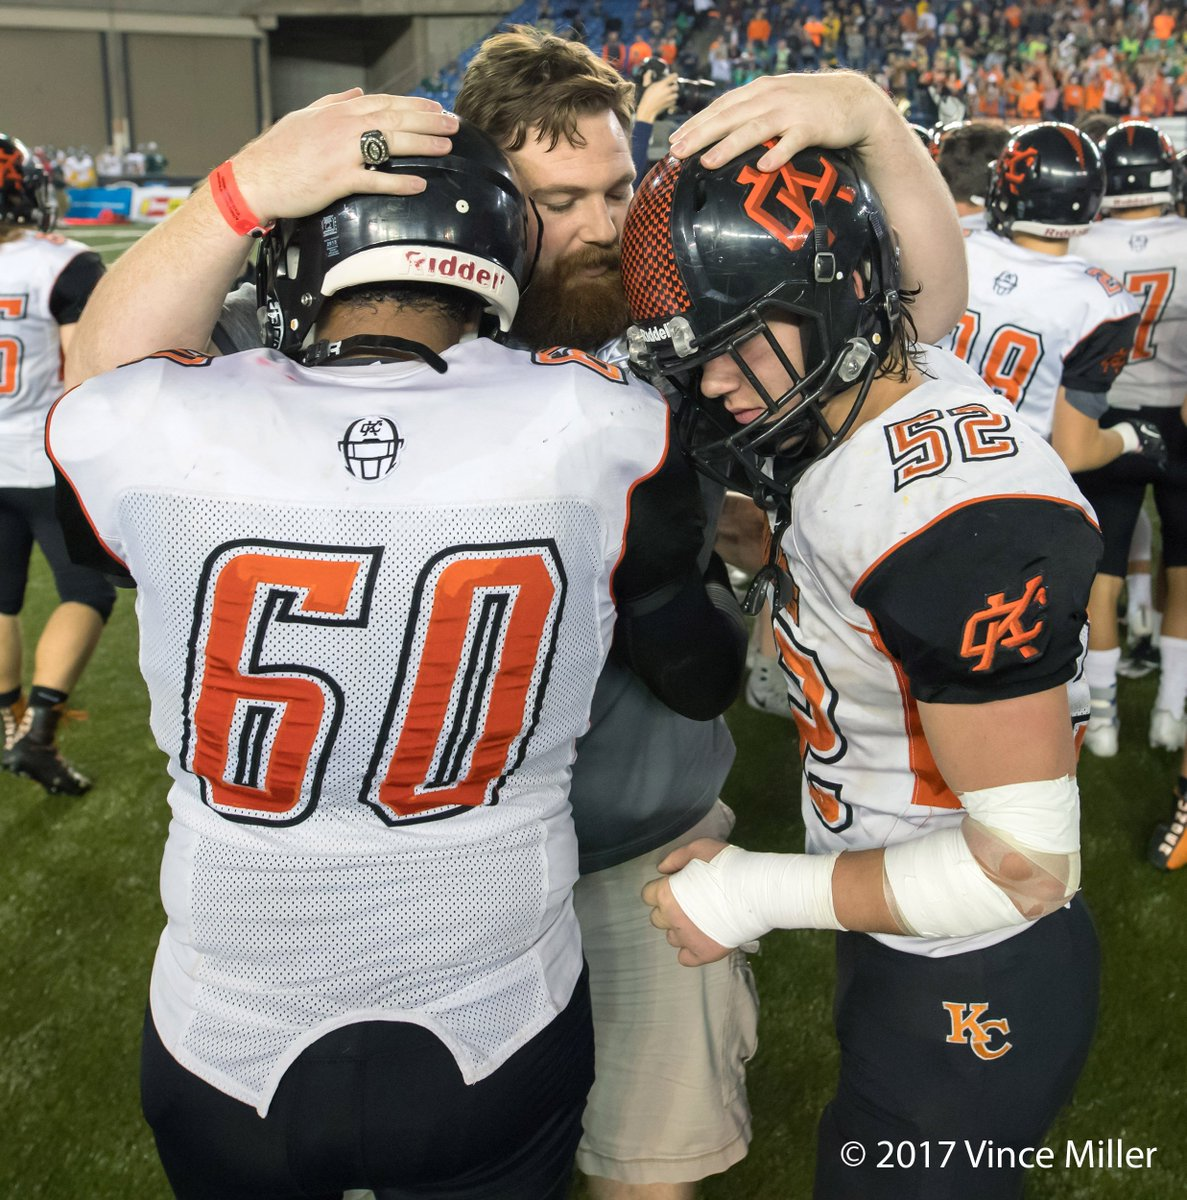 test Twitter Media - @nooknation Kalama vs Liberty-Spangle WIAA 2B Final Game Pix: https://t.co/eI3eh81D2k #wafbscores #MaxPreps #WIAA2BChamps #ILoveHSFootball @WaState2BFB https://t.co/4IU6gOwIFP